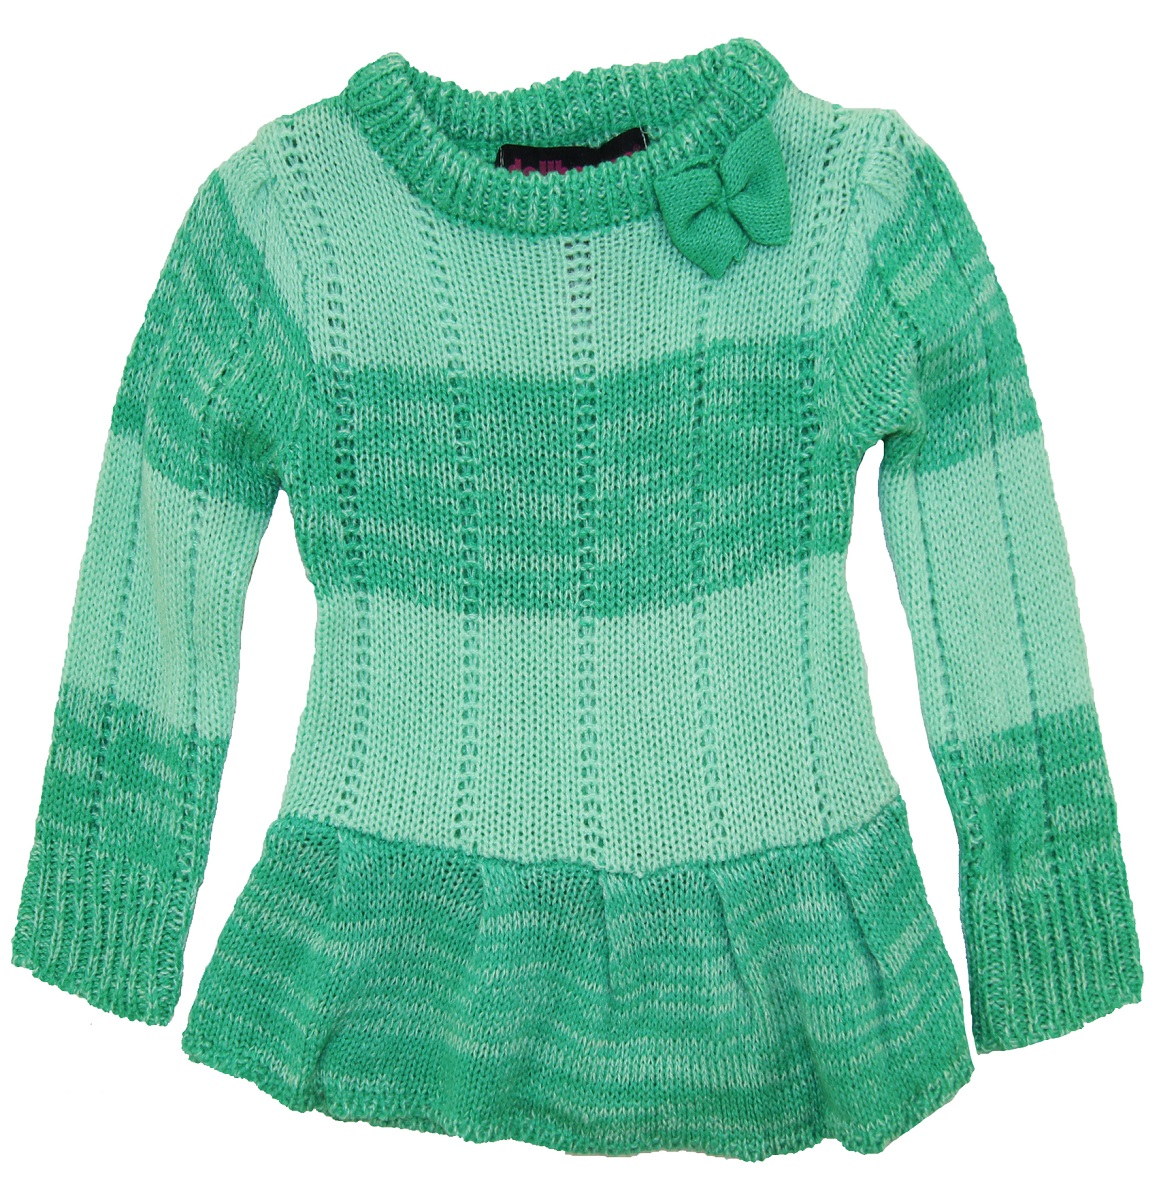 Dollhouse Baby Girls Ruffeled Pointelle Knit Cardigan Sweater with Bow